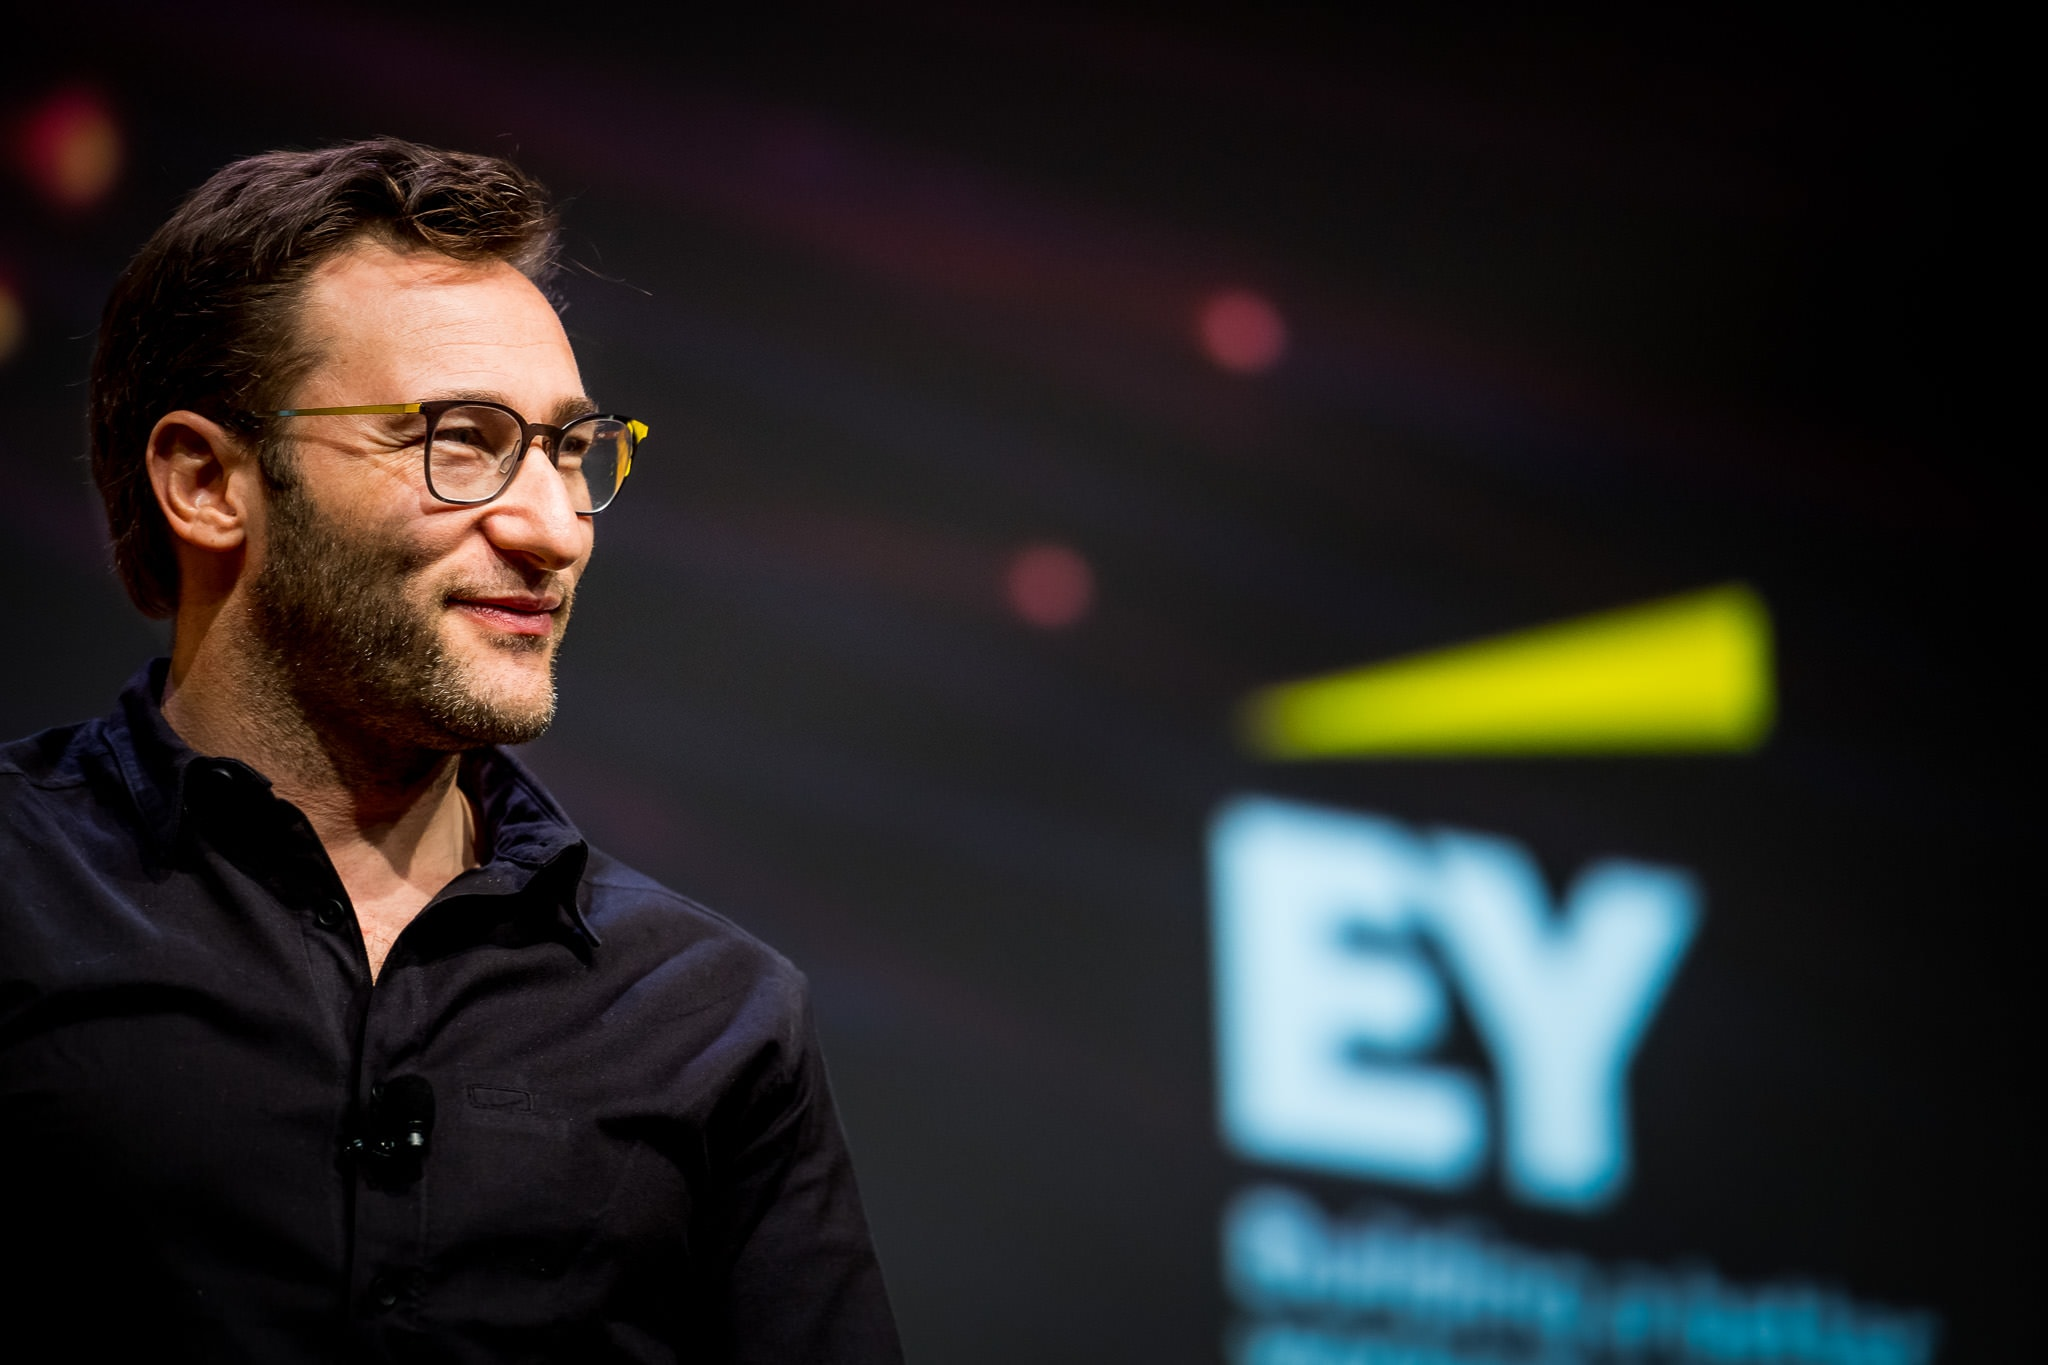 Simon Sinek smiles at the crowd of EY employees during his speech